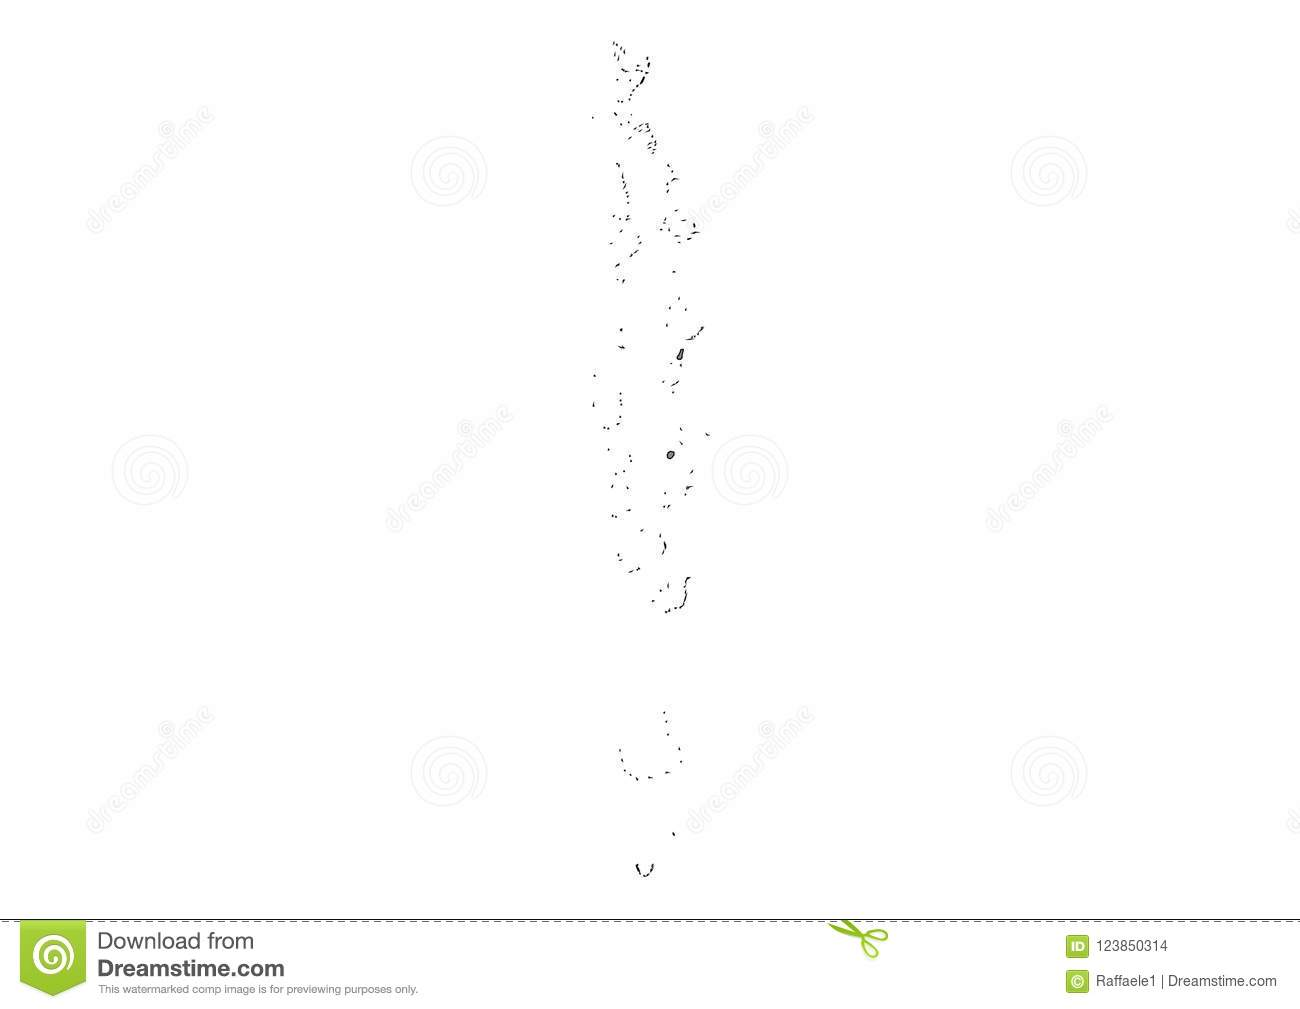 Maldives State Map Vector Silhouette Stock Vector - Illustration of ...